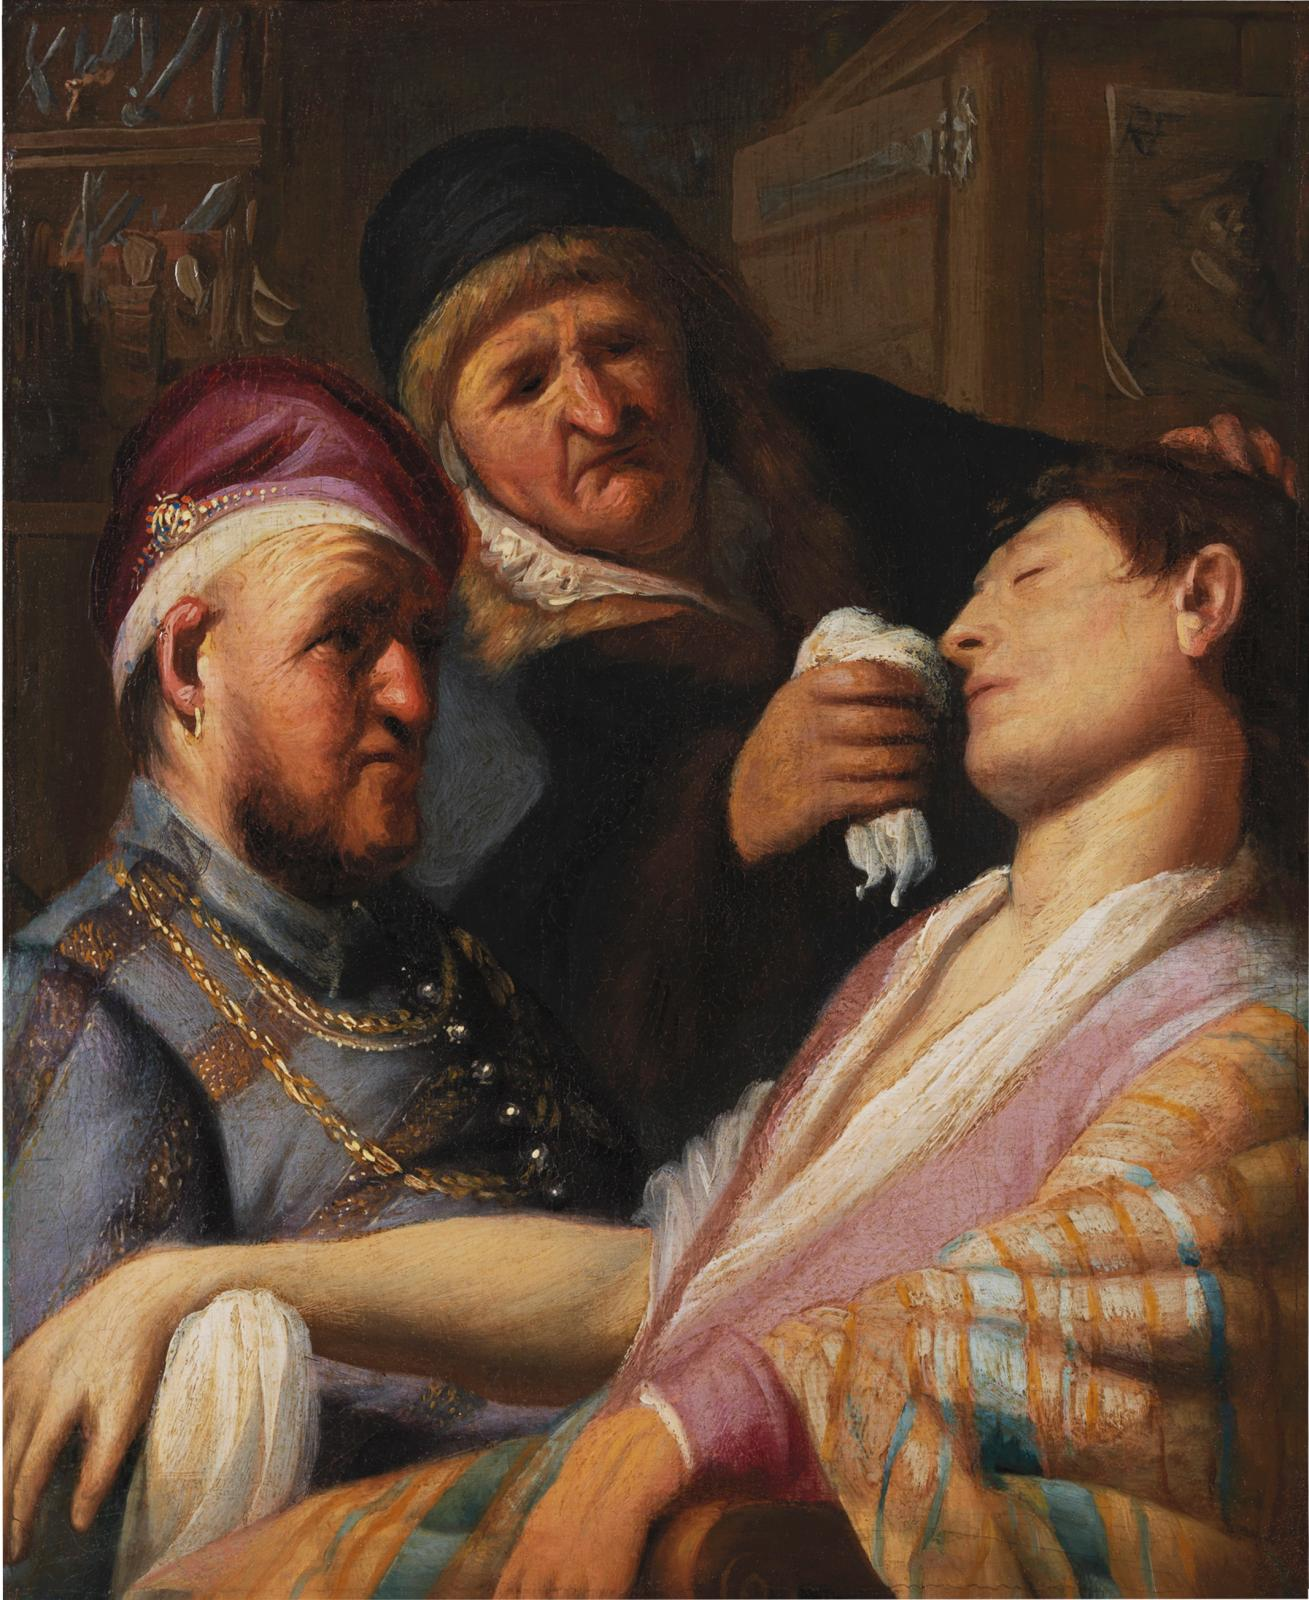 Rembrandt Van Rijn (1606-1669), Unconscious Patient (Allegory of Smell), ca. 1624-1625, oil on panel, 21.6 x 17.8 cm. The Leiden Collectio